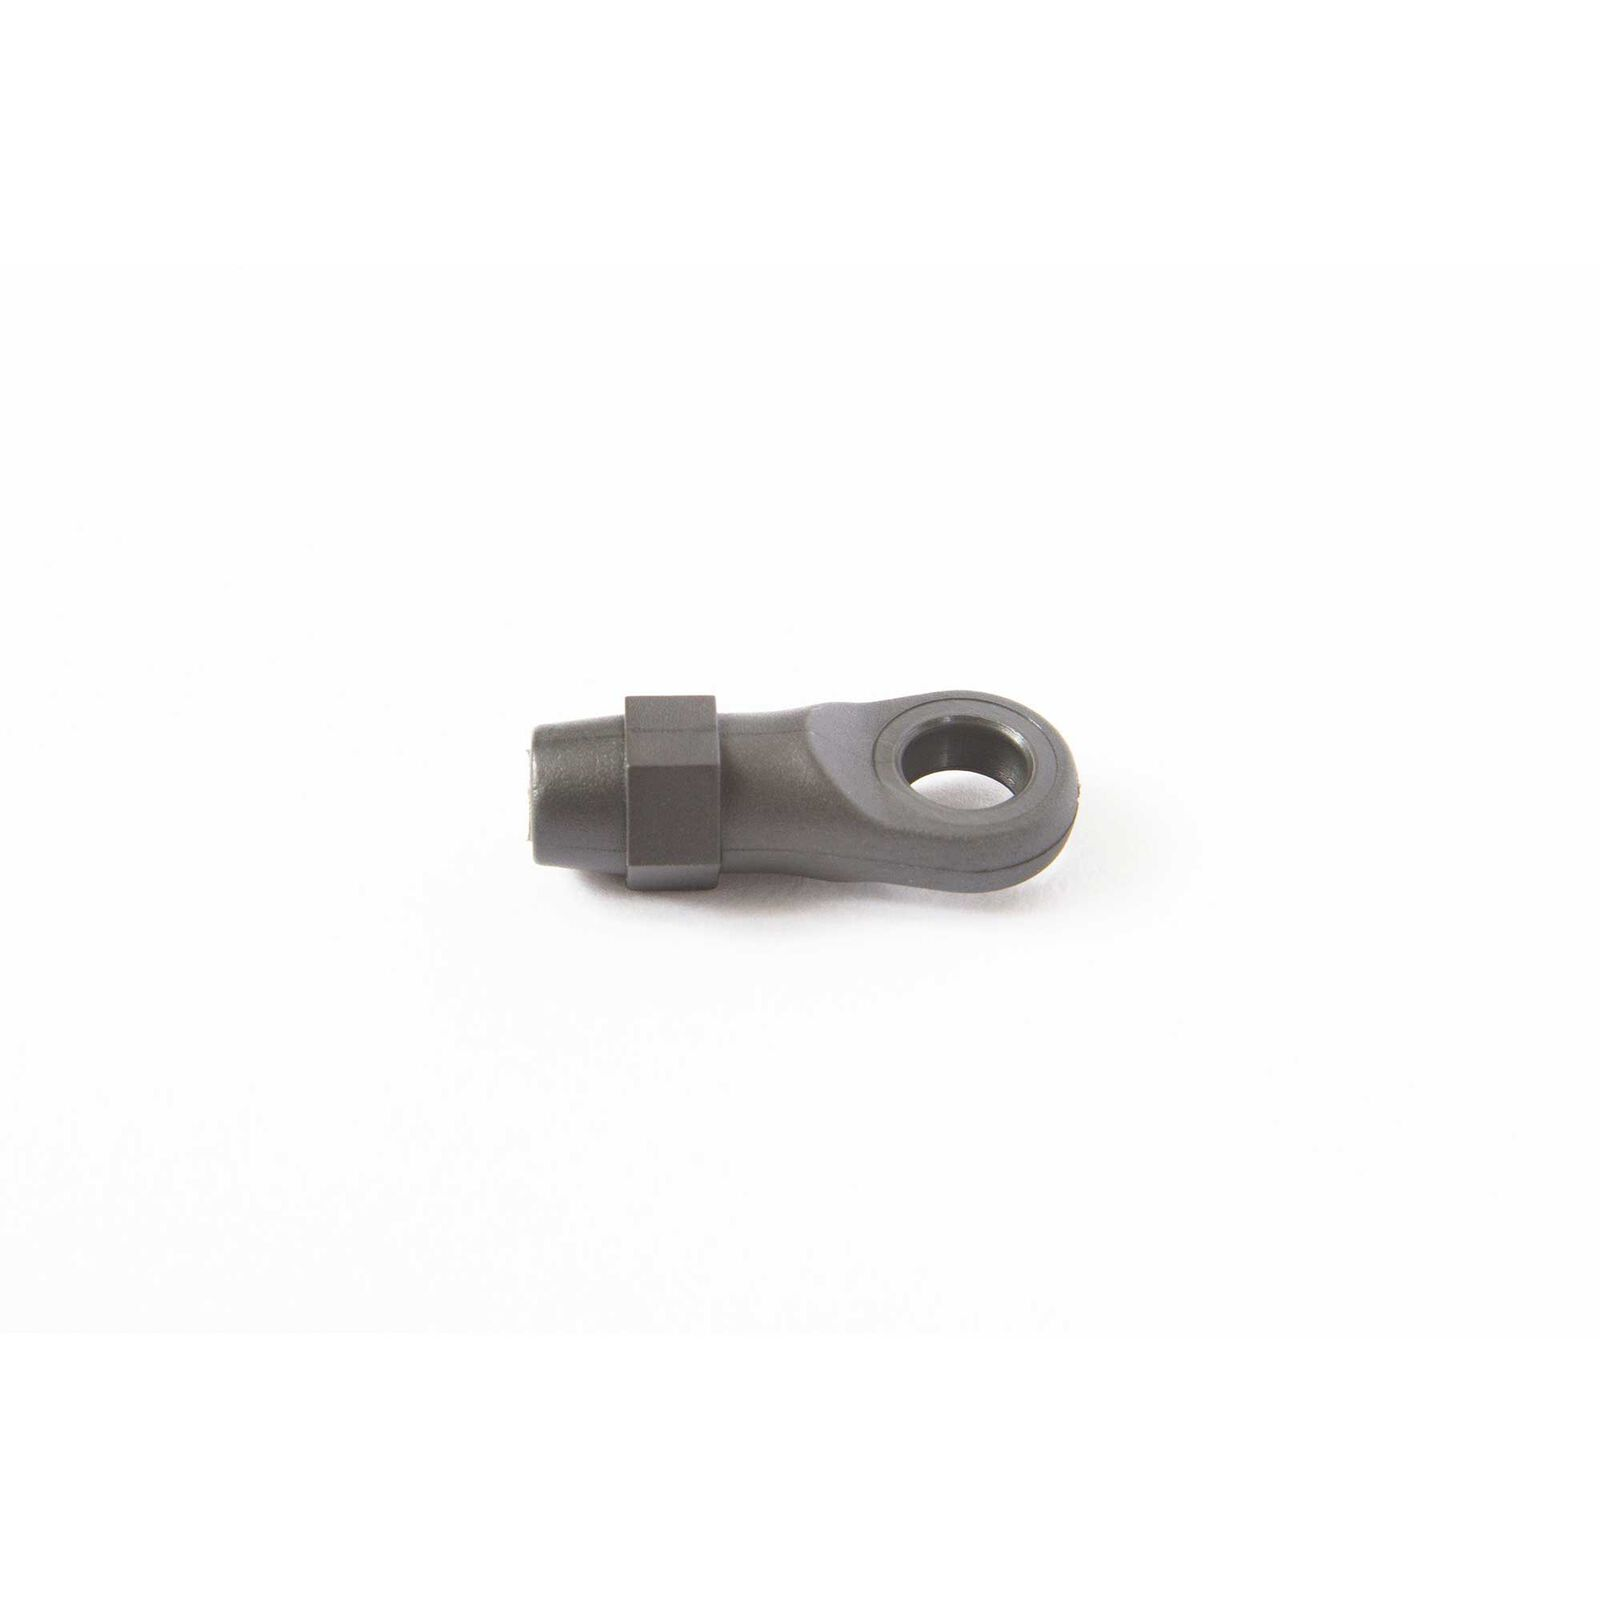 HD Rod Ends M4 (20): Capra 1.9 UTB